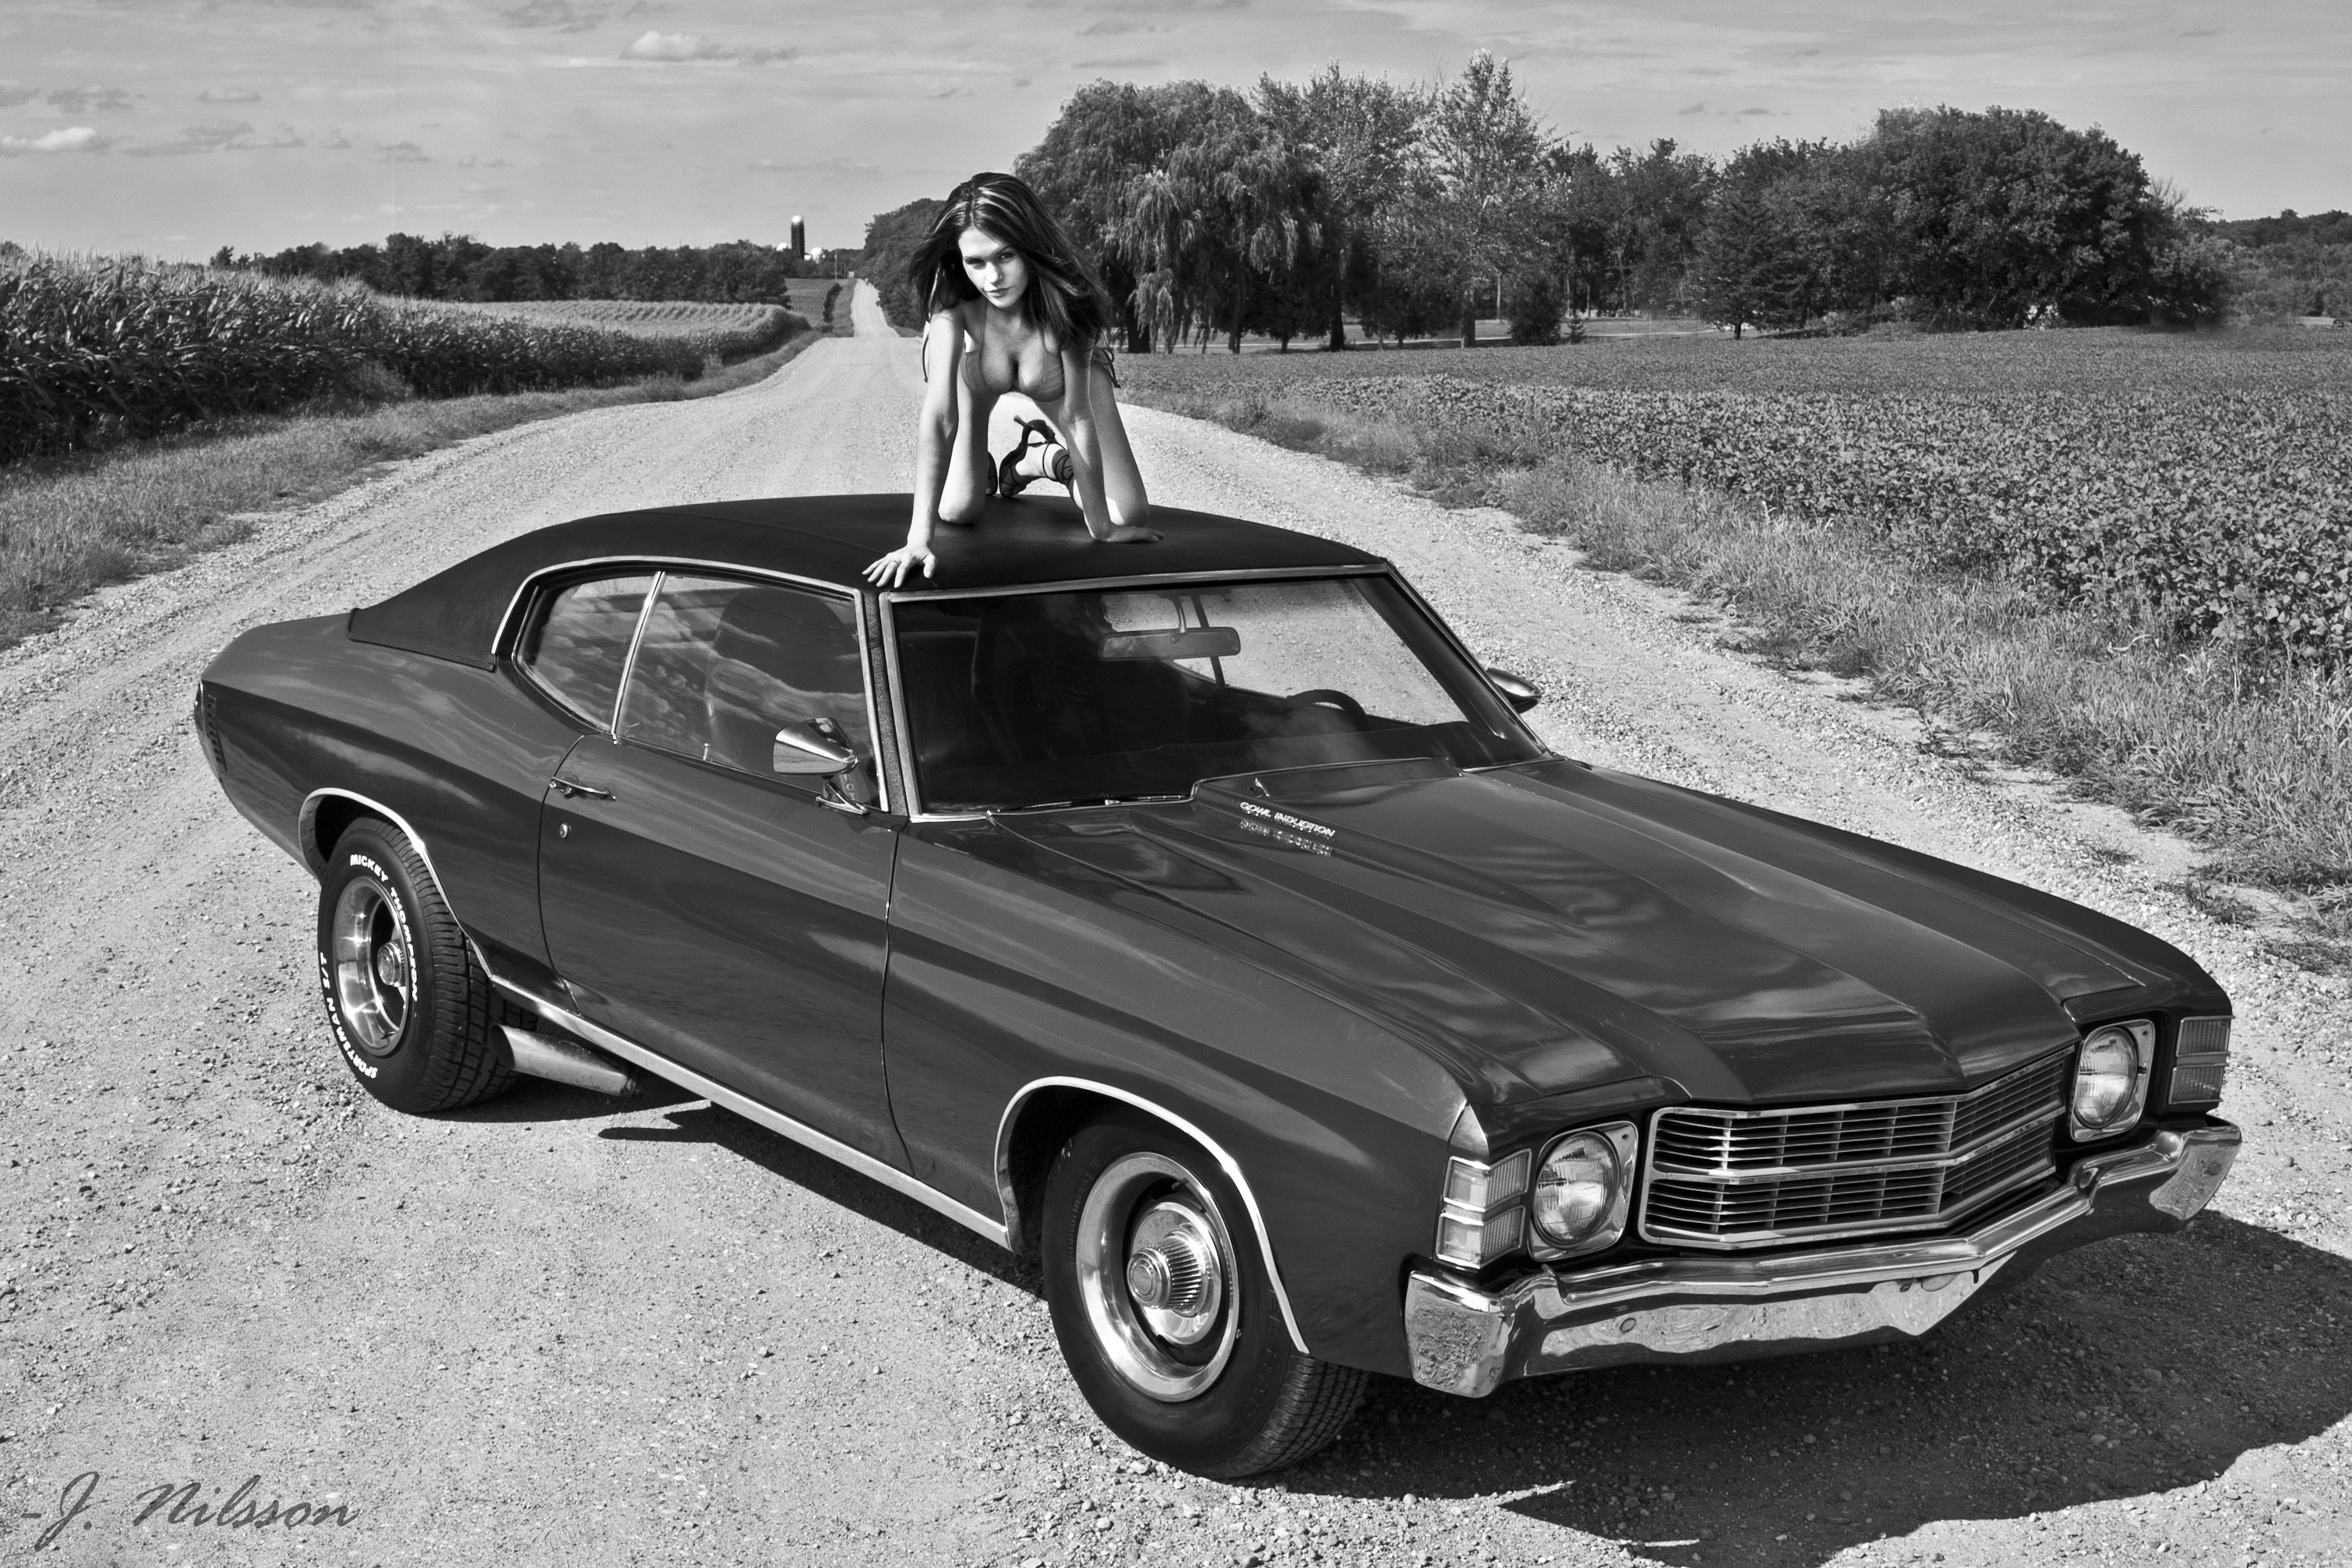 girl-on-muscle-car